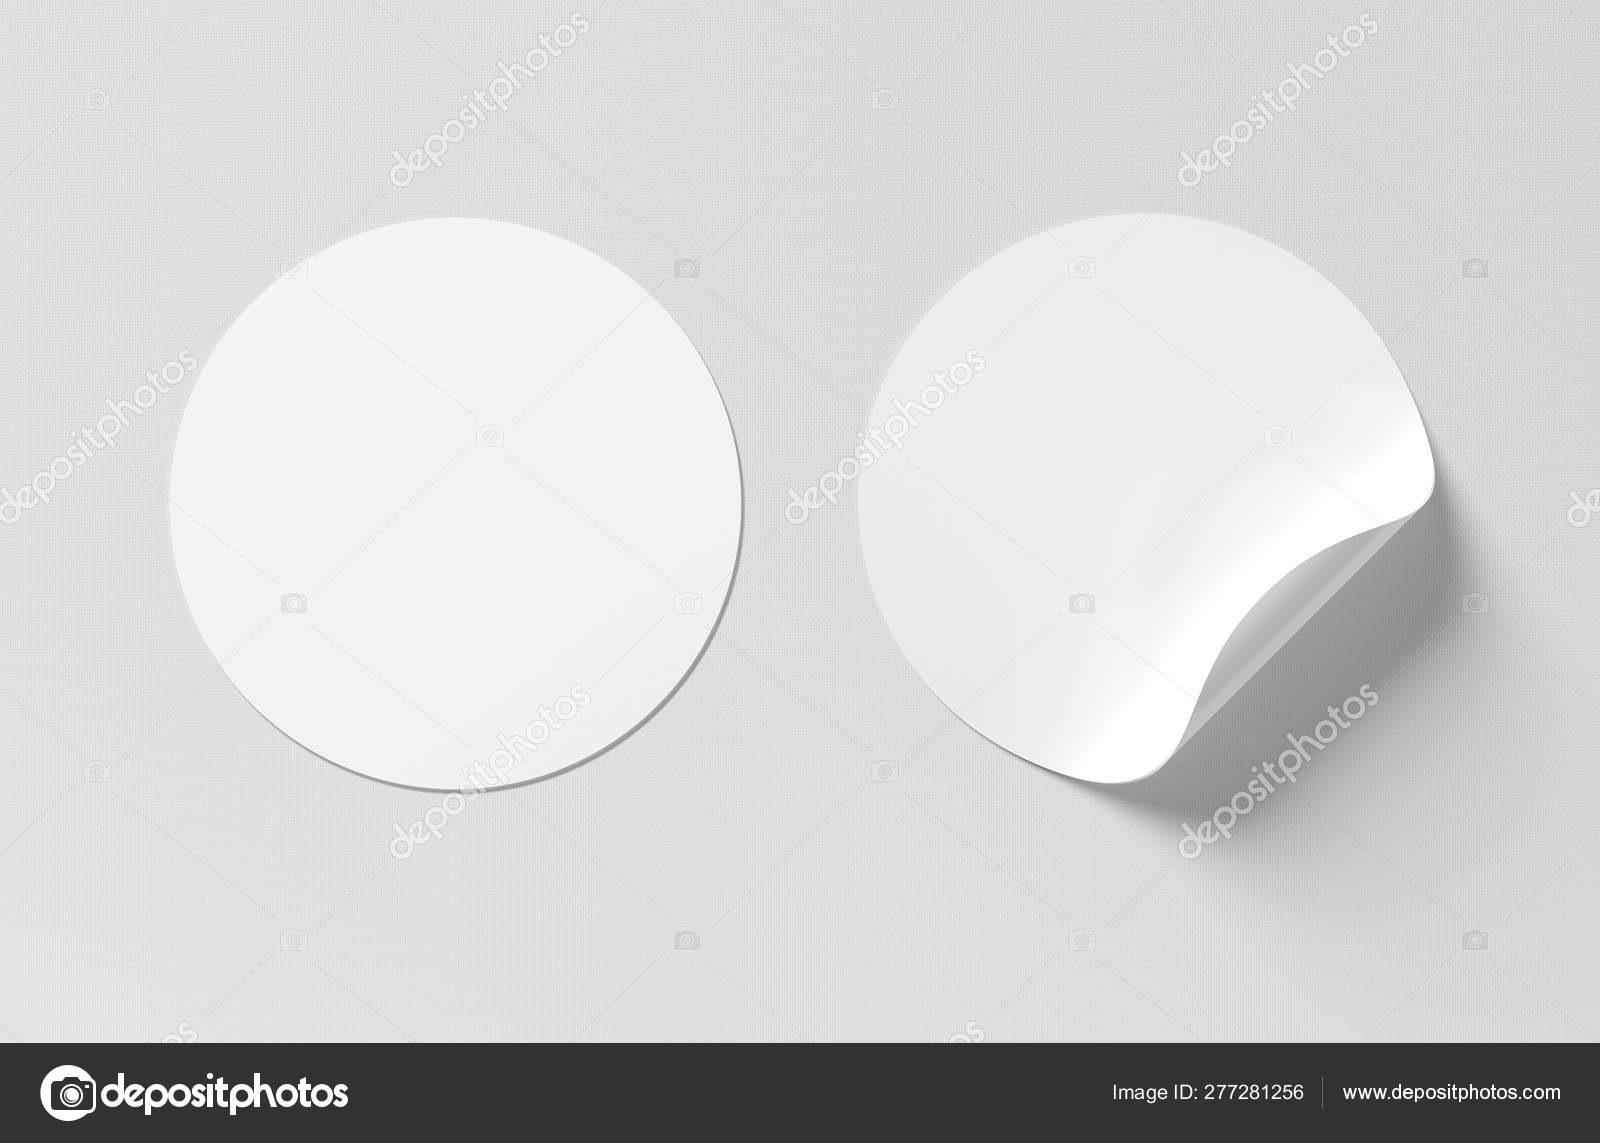 Blank curled sticker mockup isolated on white 3D rendering